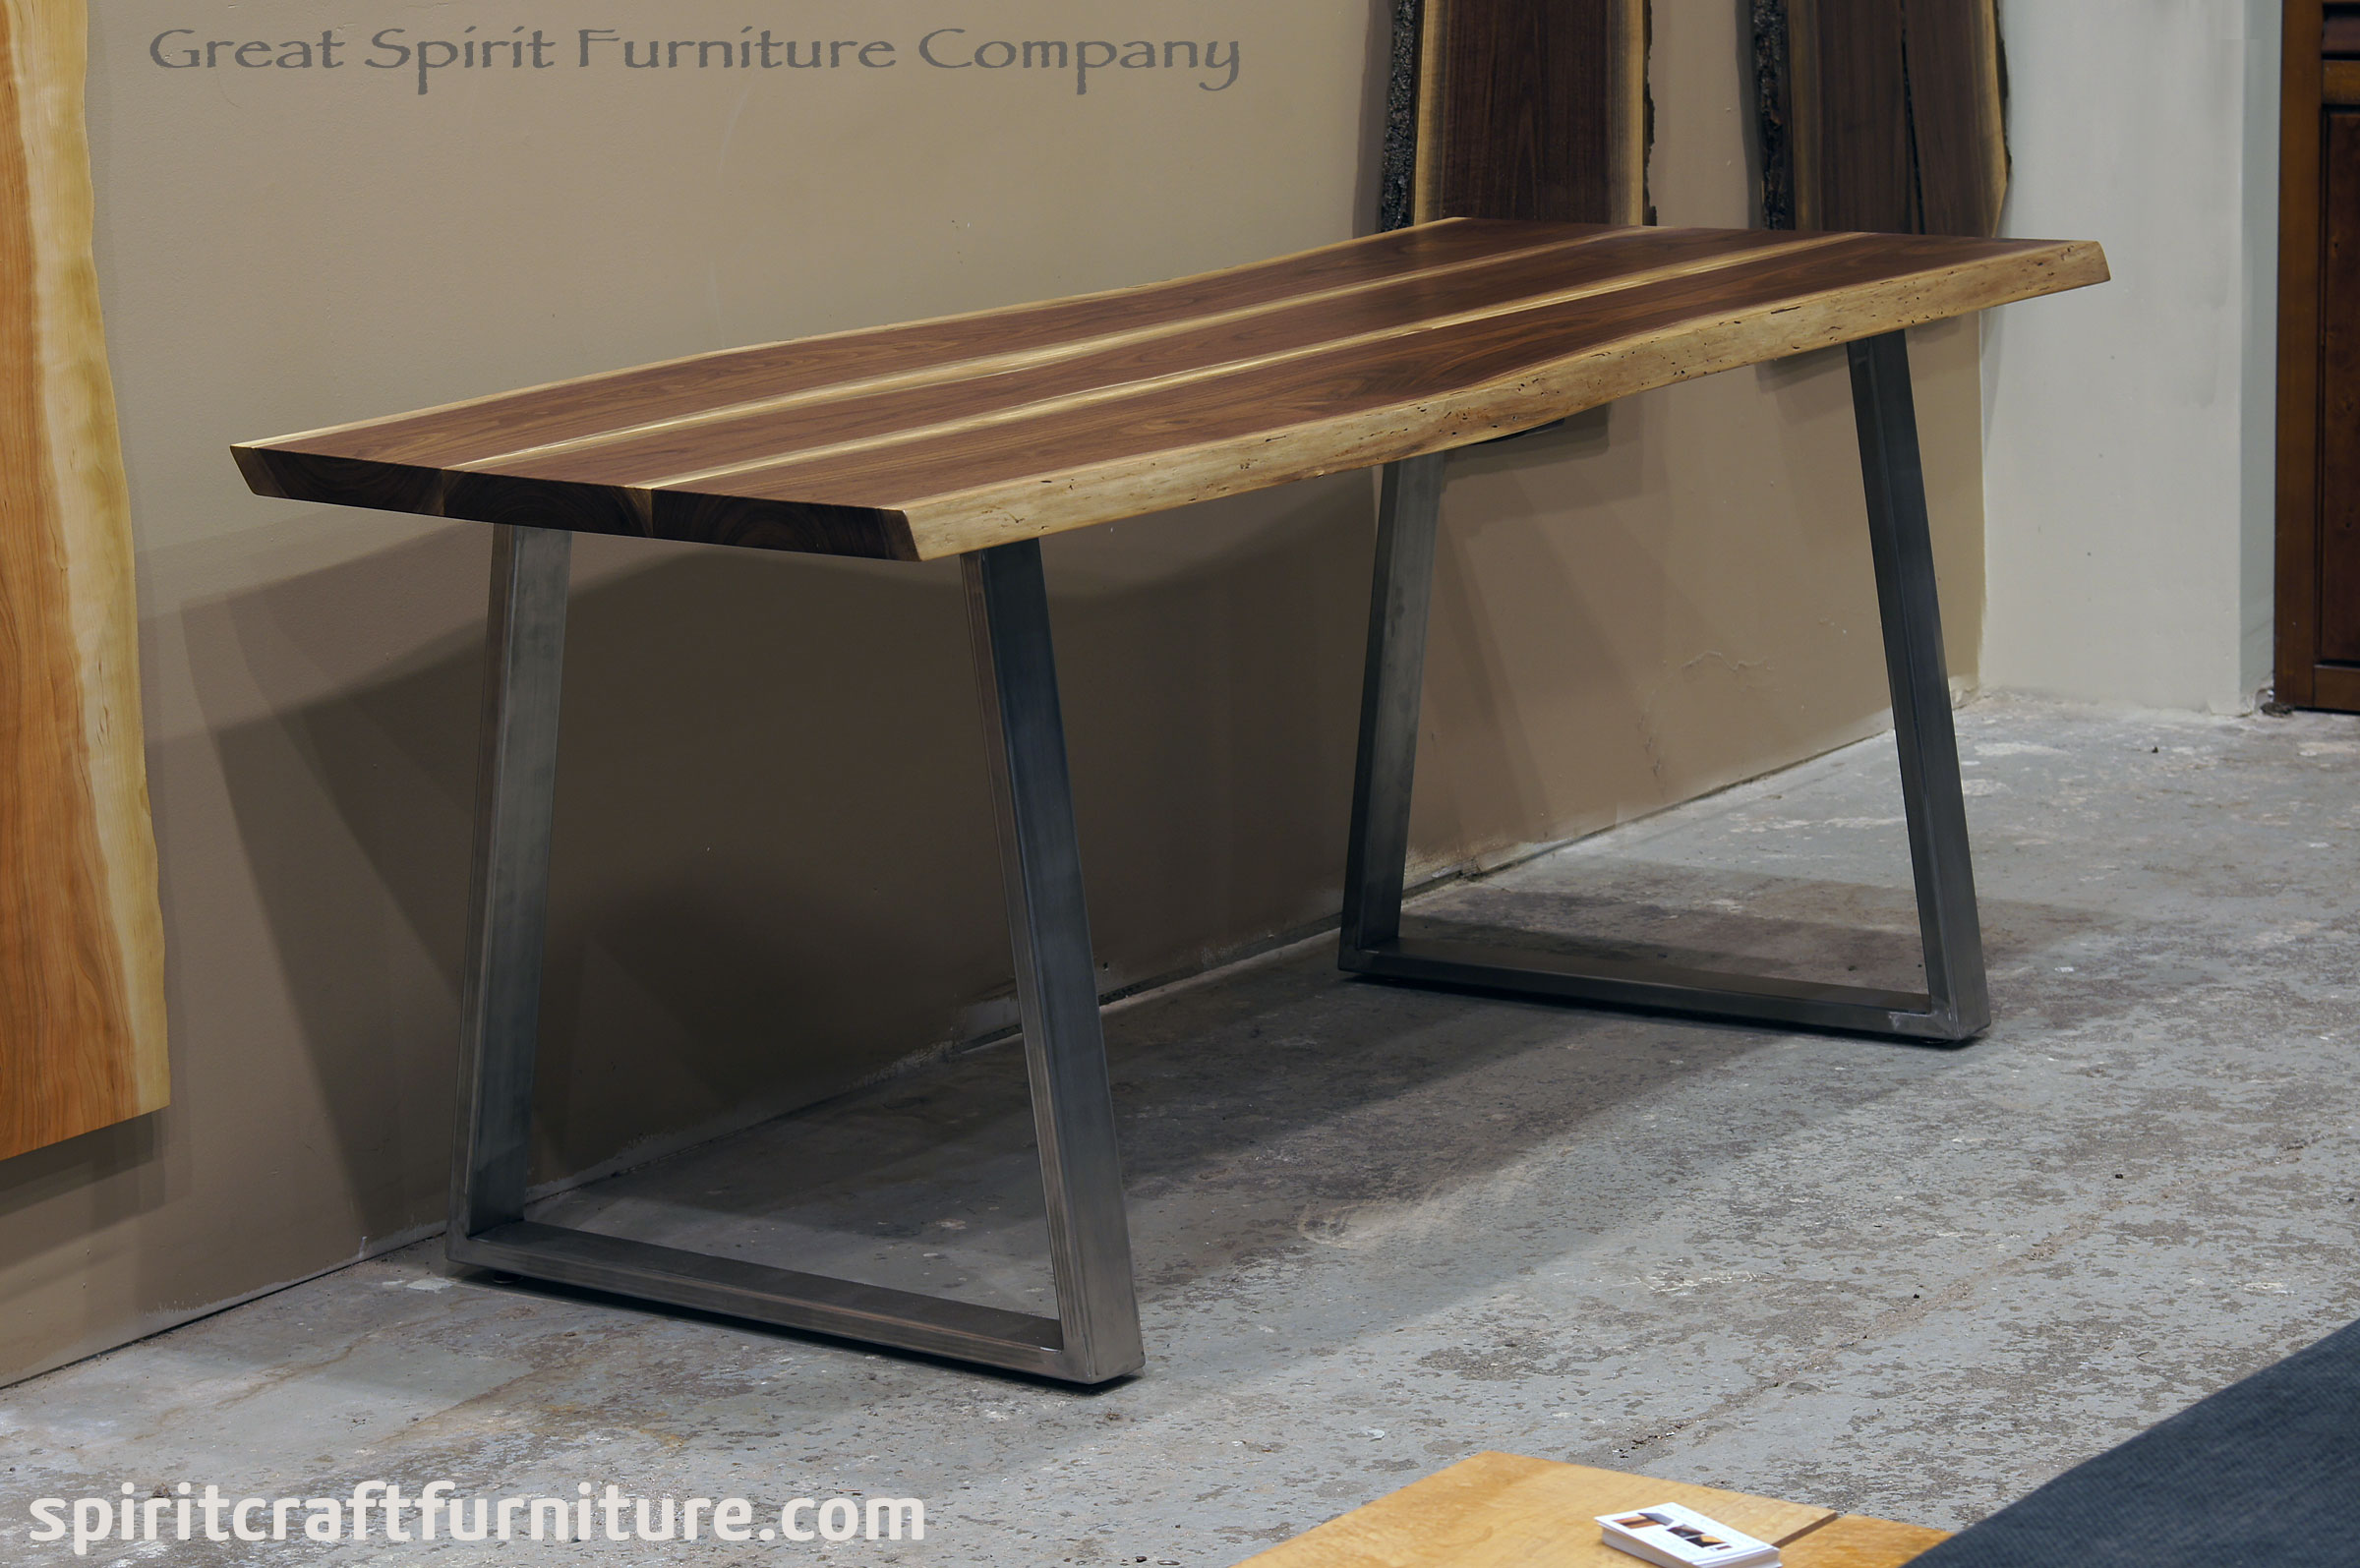 Live edge kitchen table or desk in solid Black Walnut on custom brushed stainless steel inverted trapezoid legs, displayed at our retail furniture store in Chicago area, East Dundee, Illinois